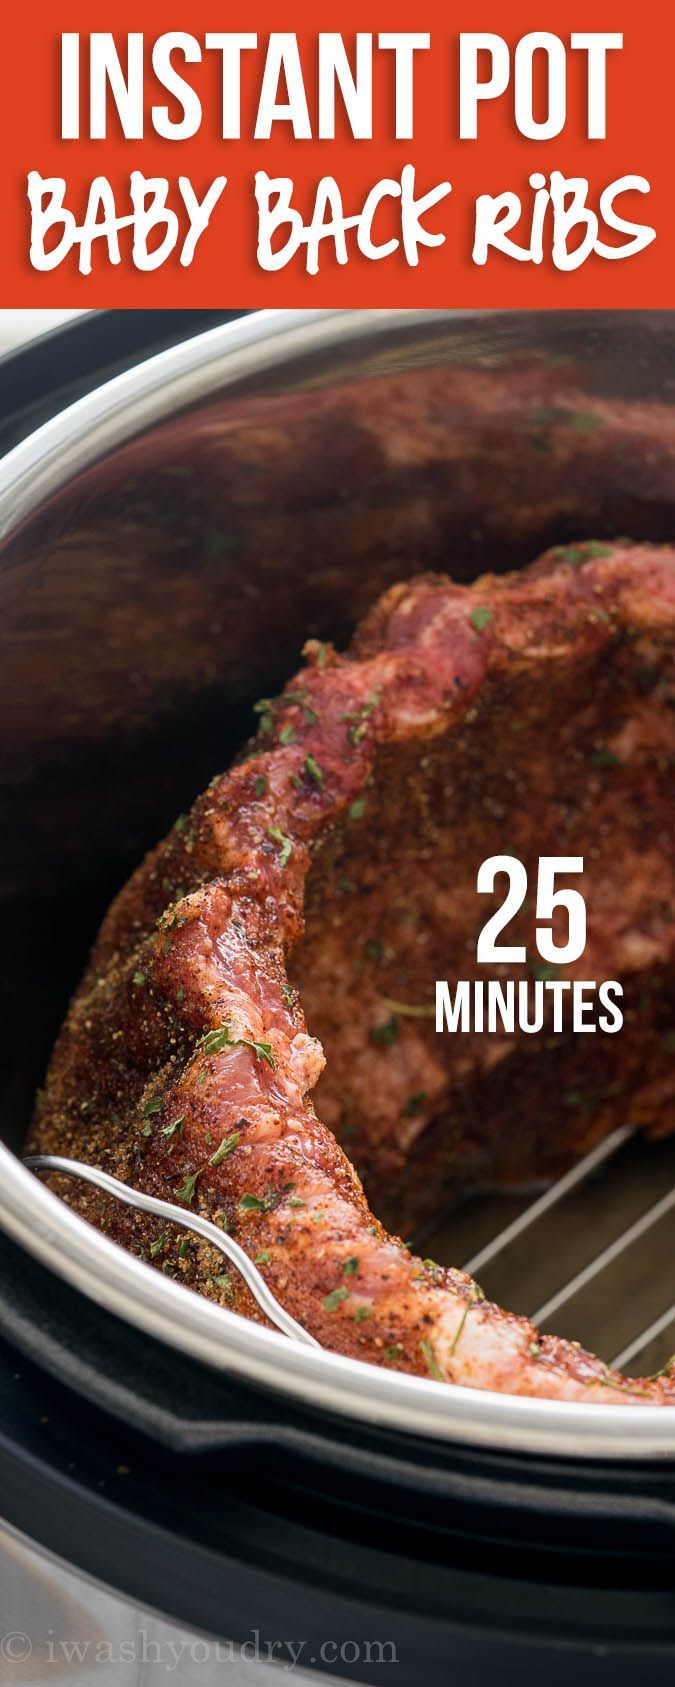 Instant Pot Baby Back Pork Ribs via @iwashyoudry